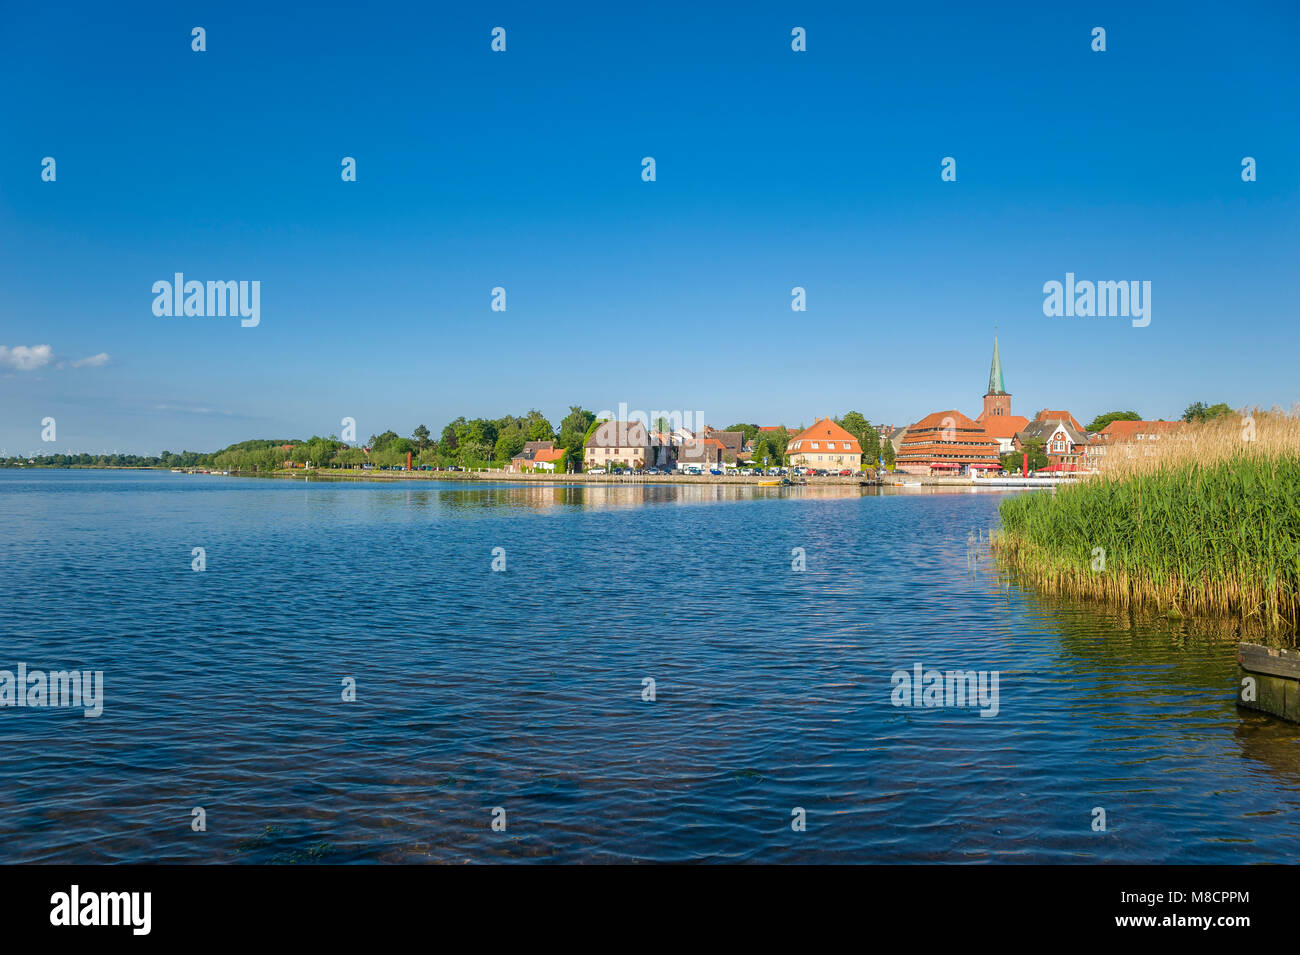 Townscape at the Neustaedter inland water, Neustadt in Holstein, Baltic Sea, Schleswig-Holstein, Germany, Europe - Stock Image